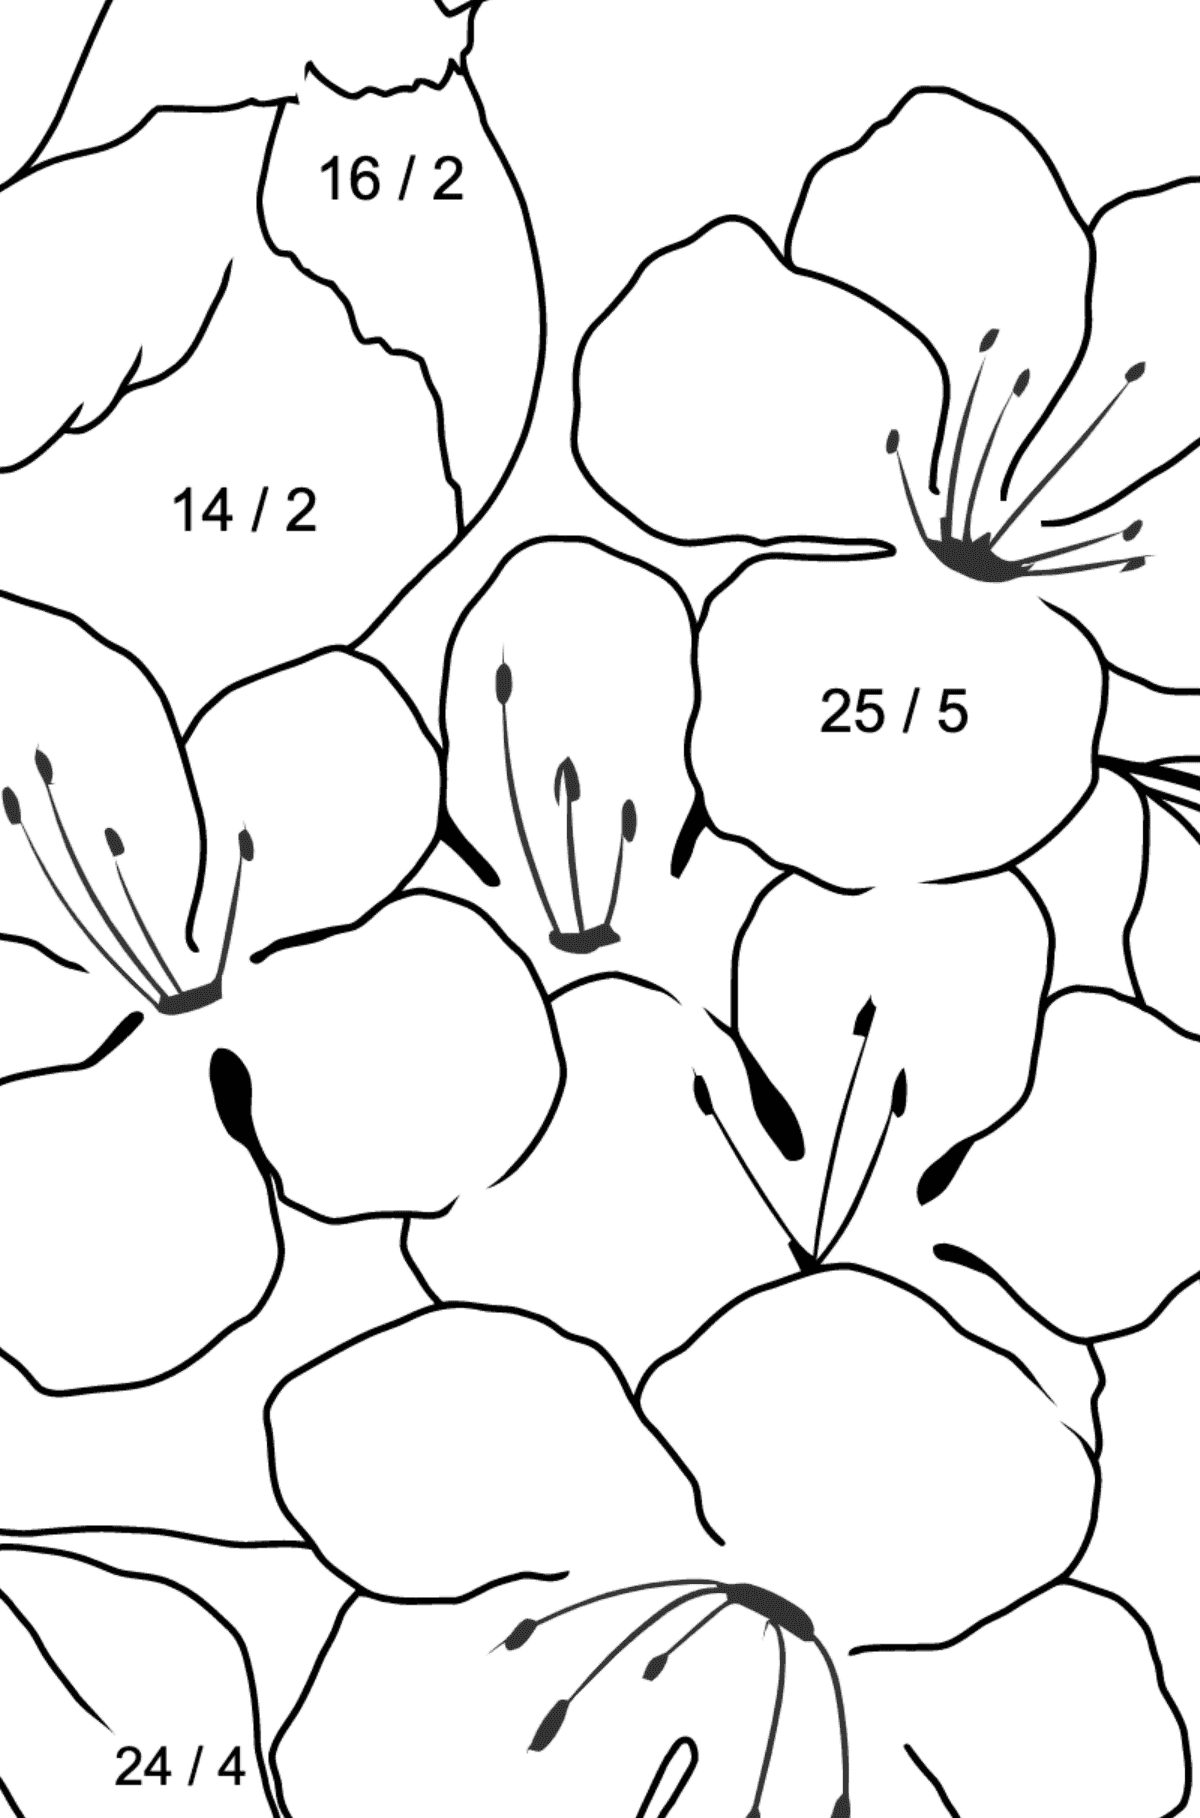 Summer Coloring Page - A Bird is Chirping on a Branch with Flowers for Children  - Color by Number Division